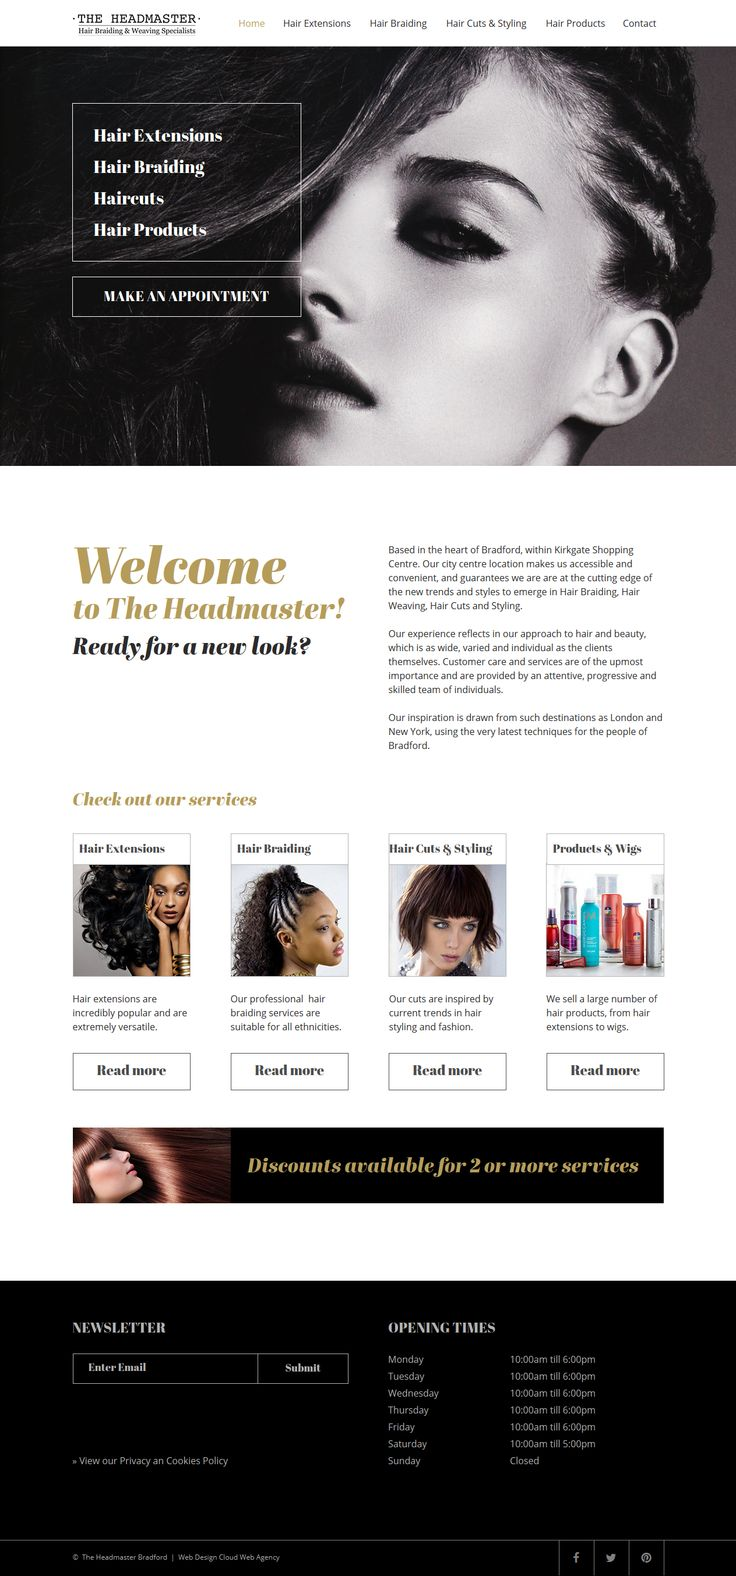 This is a website we have just created for a local company in Bradford.  The company specialise in hair weaving, hair extensions and hair braiding.  #website #design #salon #hairsalon